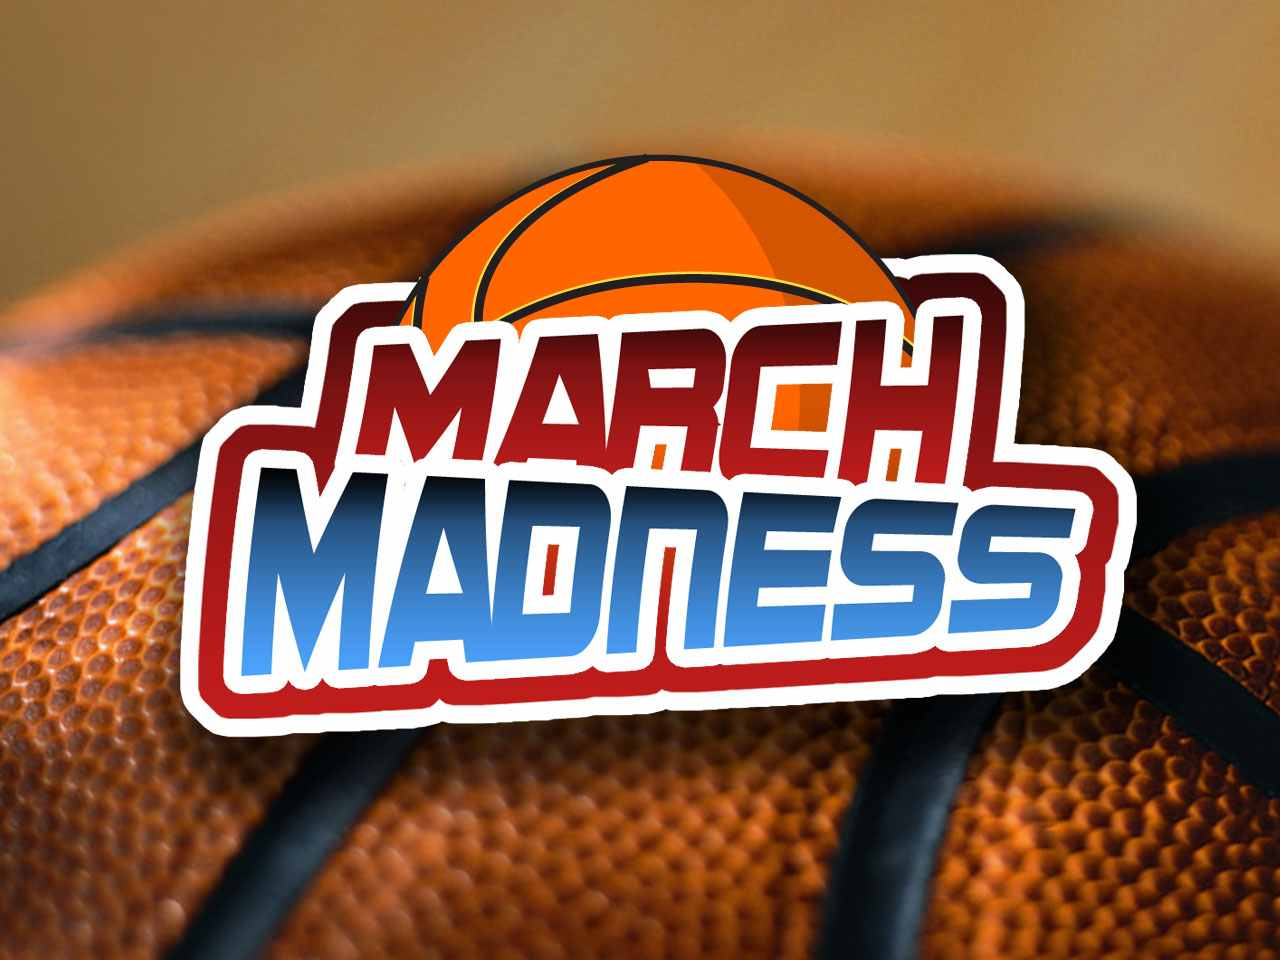 March madness baloncesto